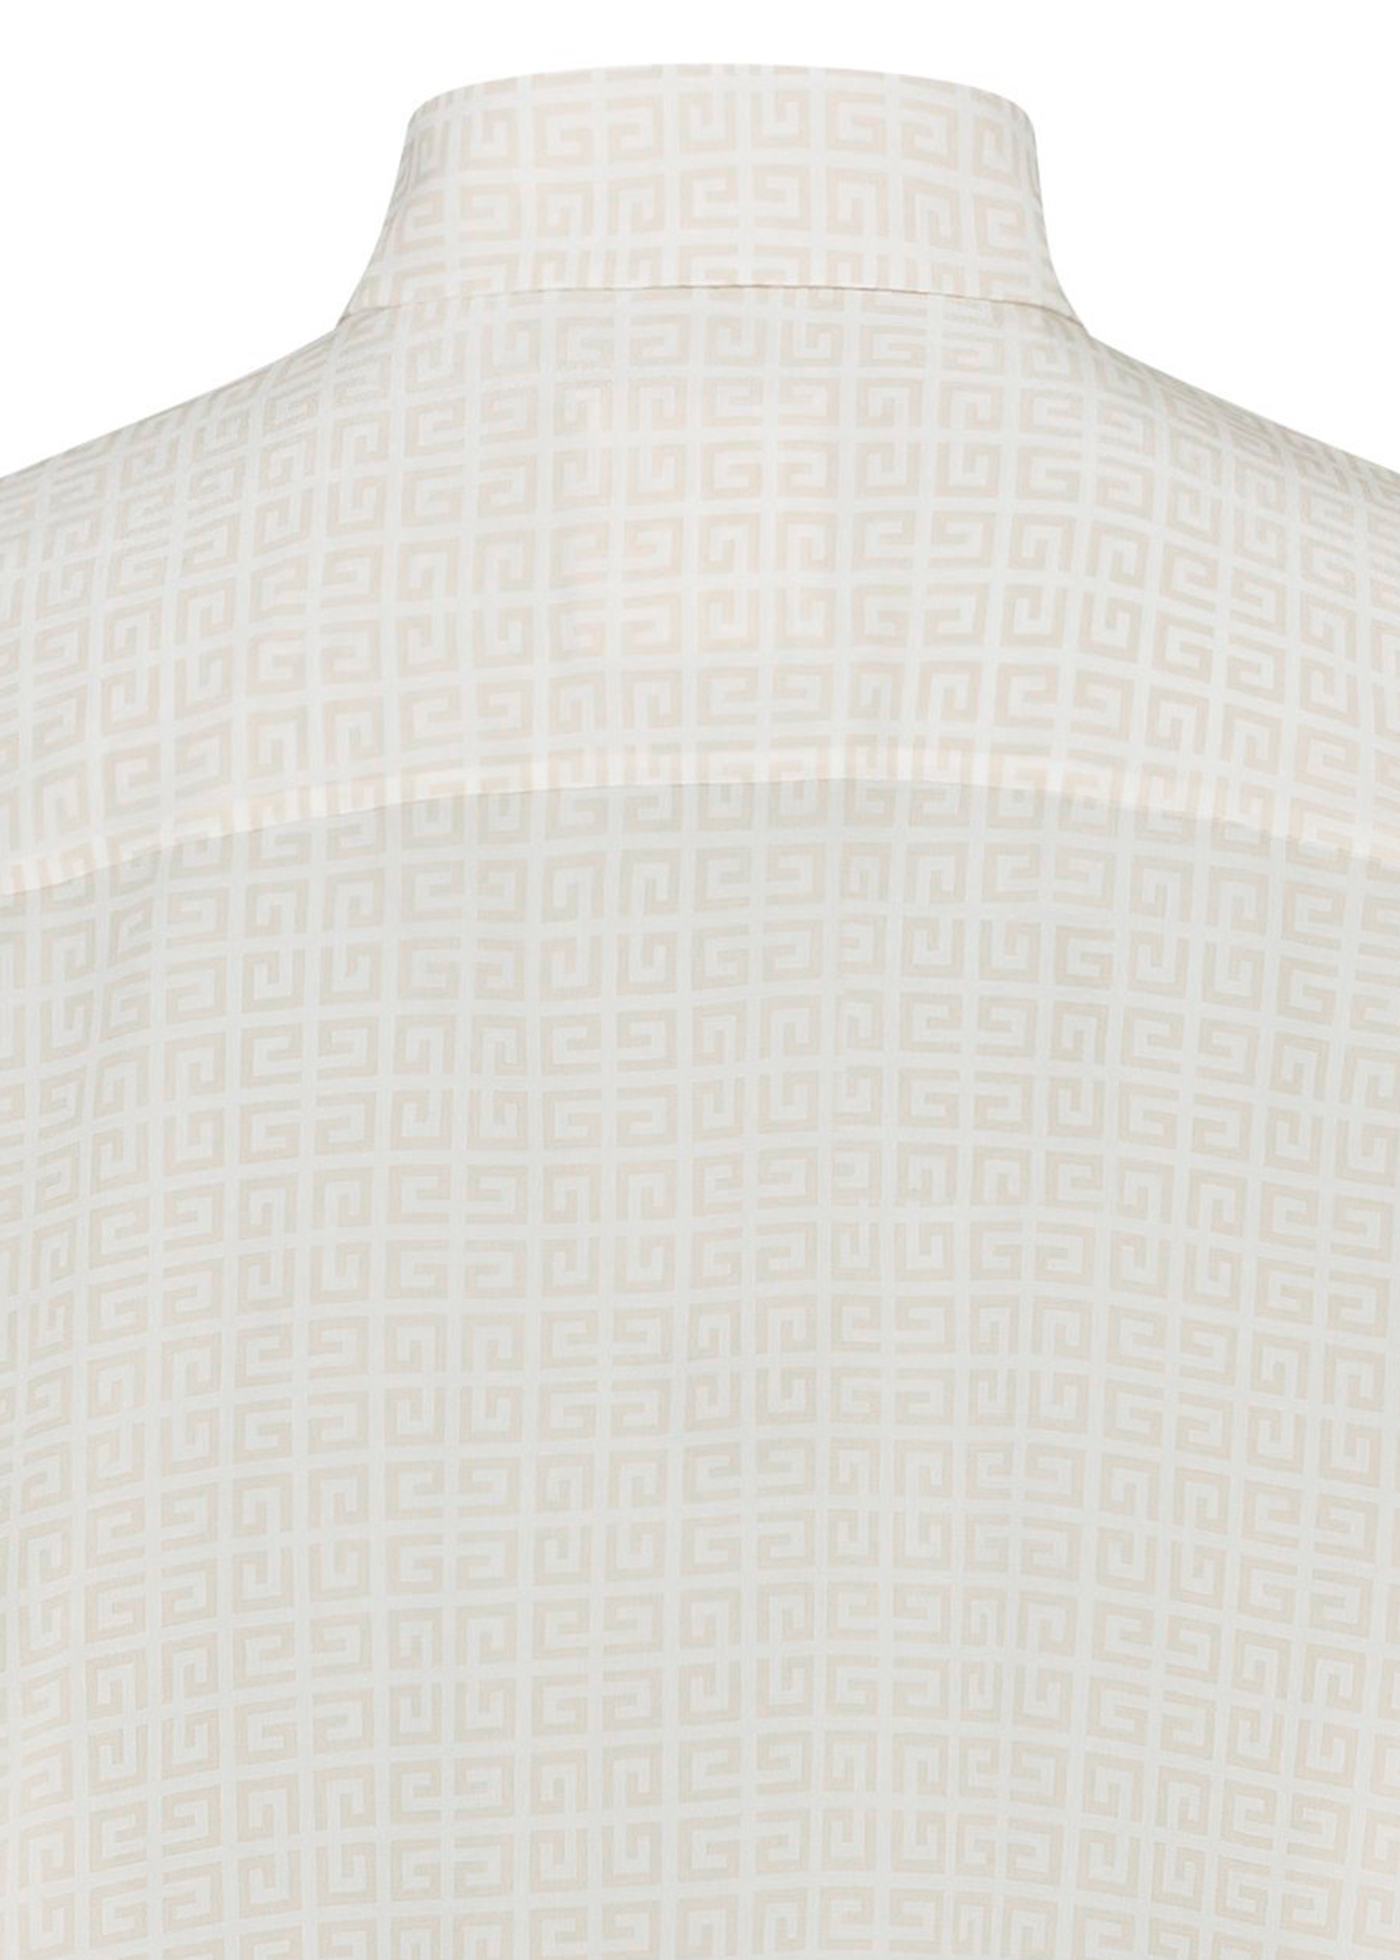 CLASSIC SHIRT WITH FRONT ZIP image number 3